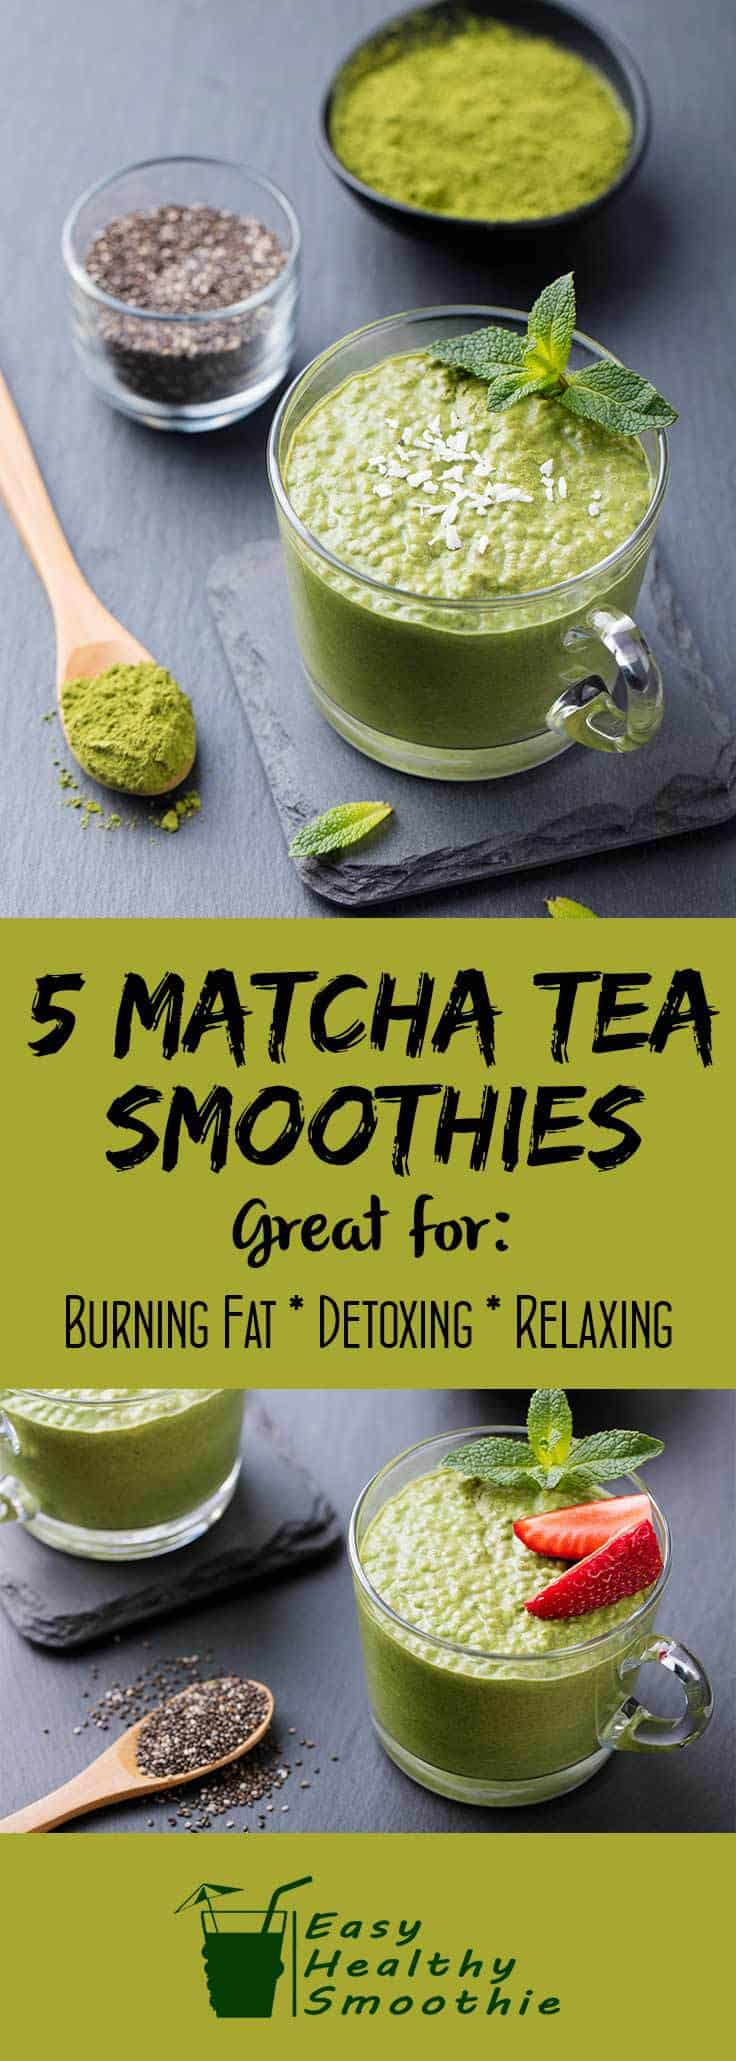 5 Matcha Tea Smoothies